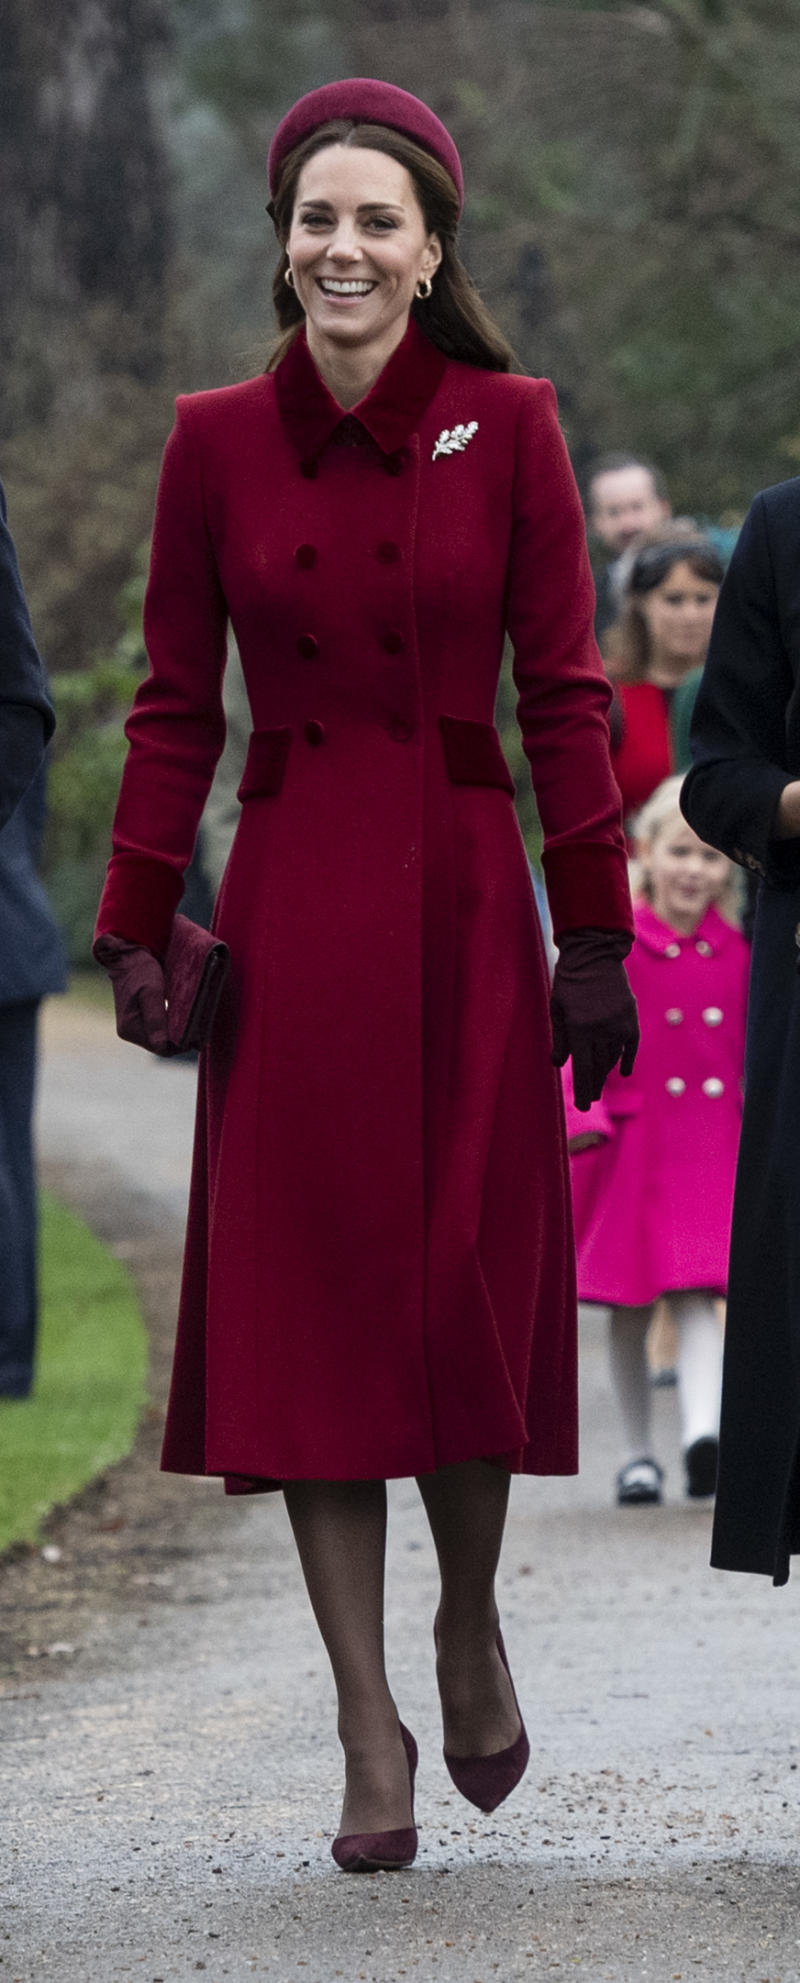 KING'S LYNN, ENGLAND - DECEMBER 25: Catherine, Duchess of Cambridge attends Christmas Day Church service at Church of St Mary Magdalene on the Sandringham estate on December 25, 2018 in King's Lynn, England. (Photo by UK Press Pool/UK Press via Getty Images)